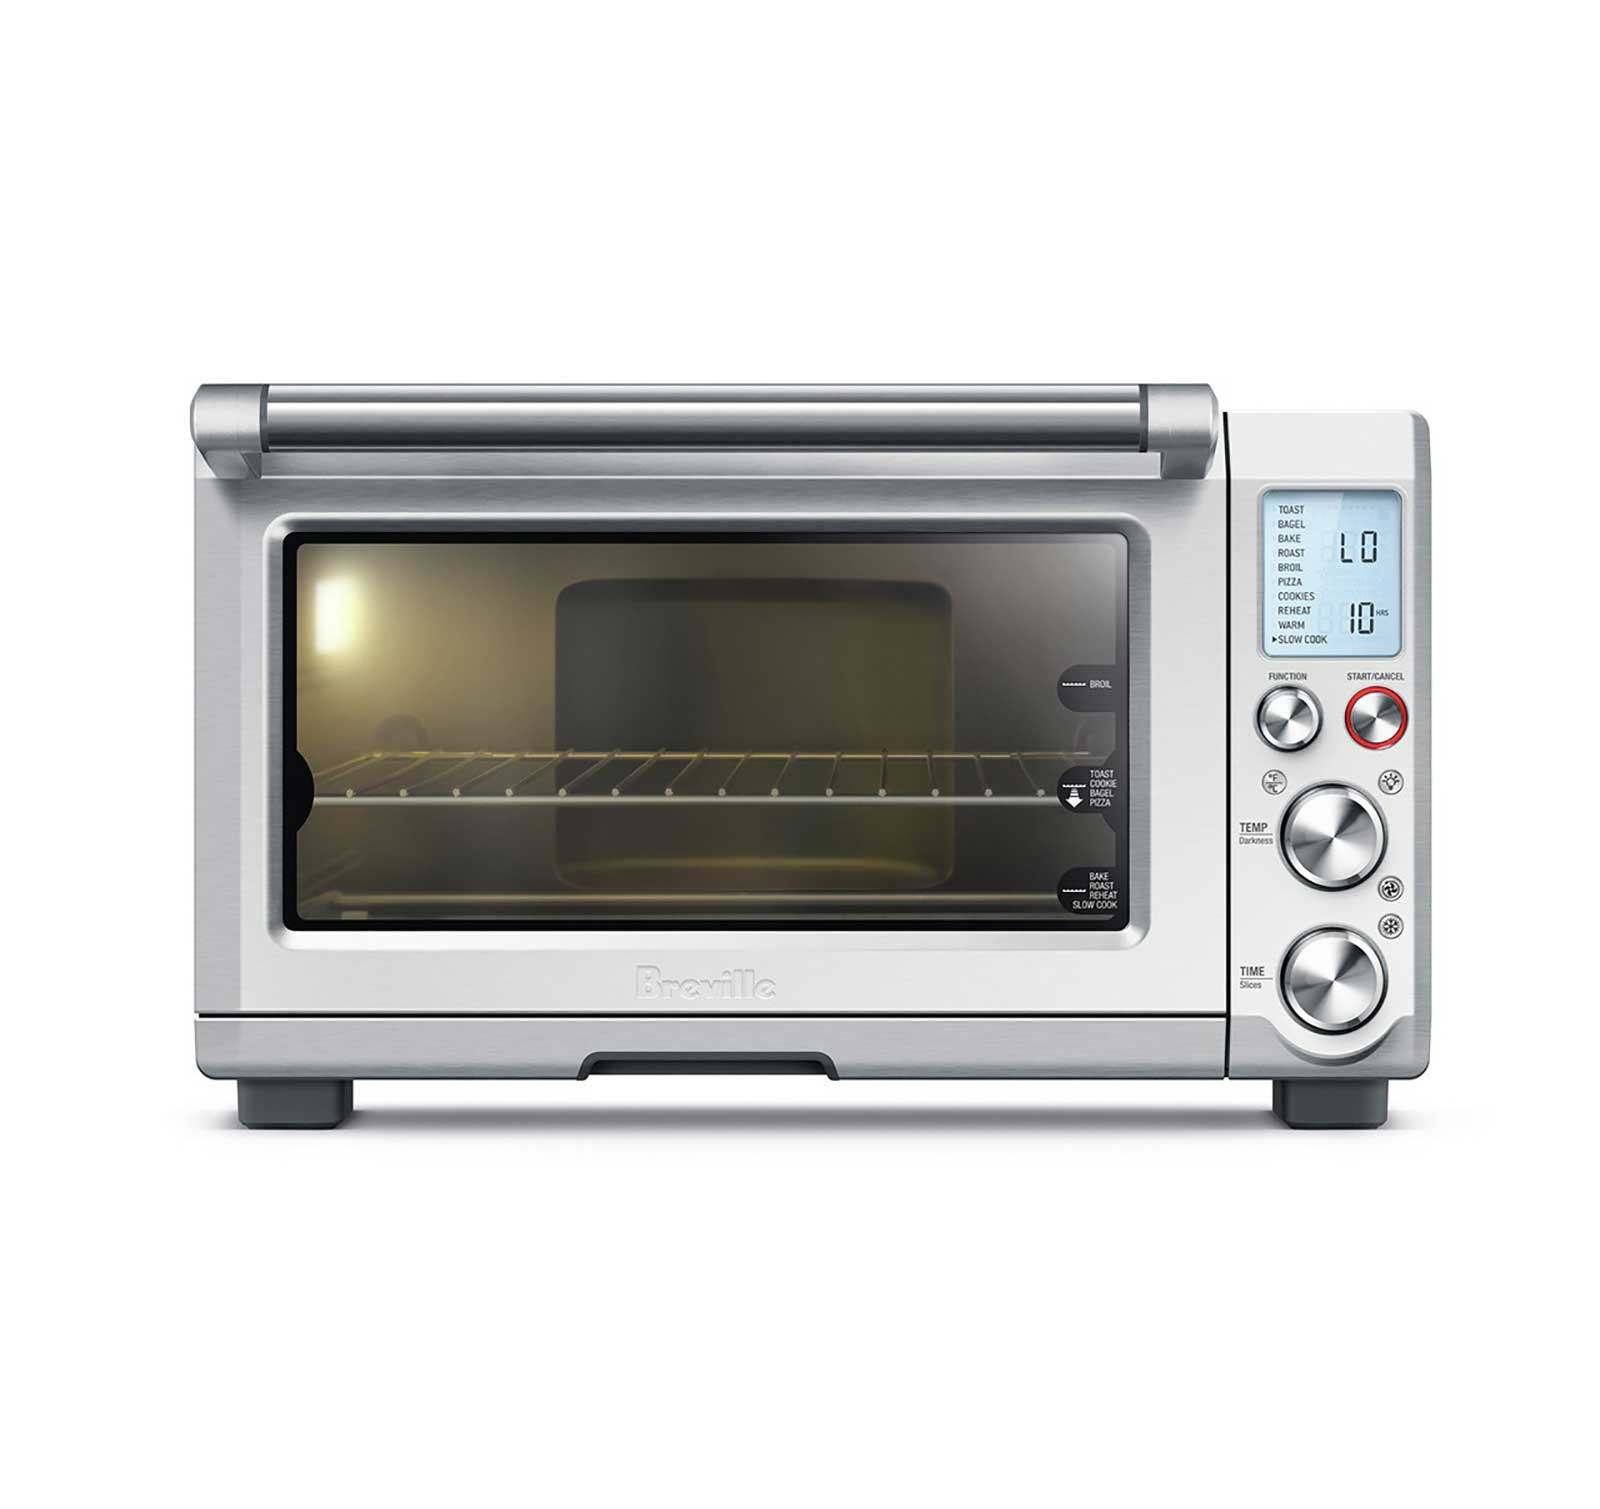 Breville BOV845BSS The Smart Oven Pro by Breville